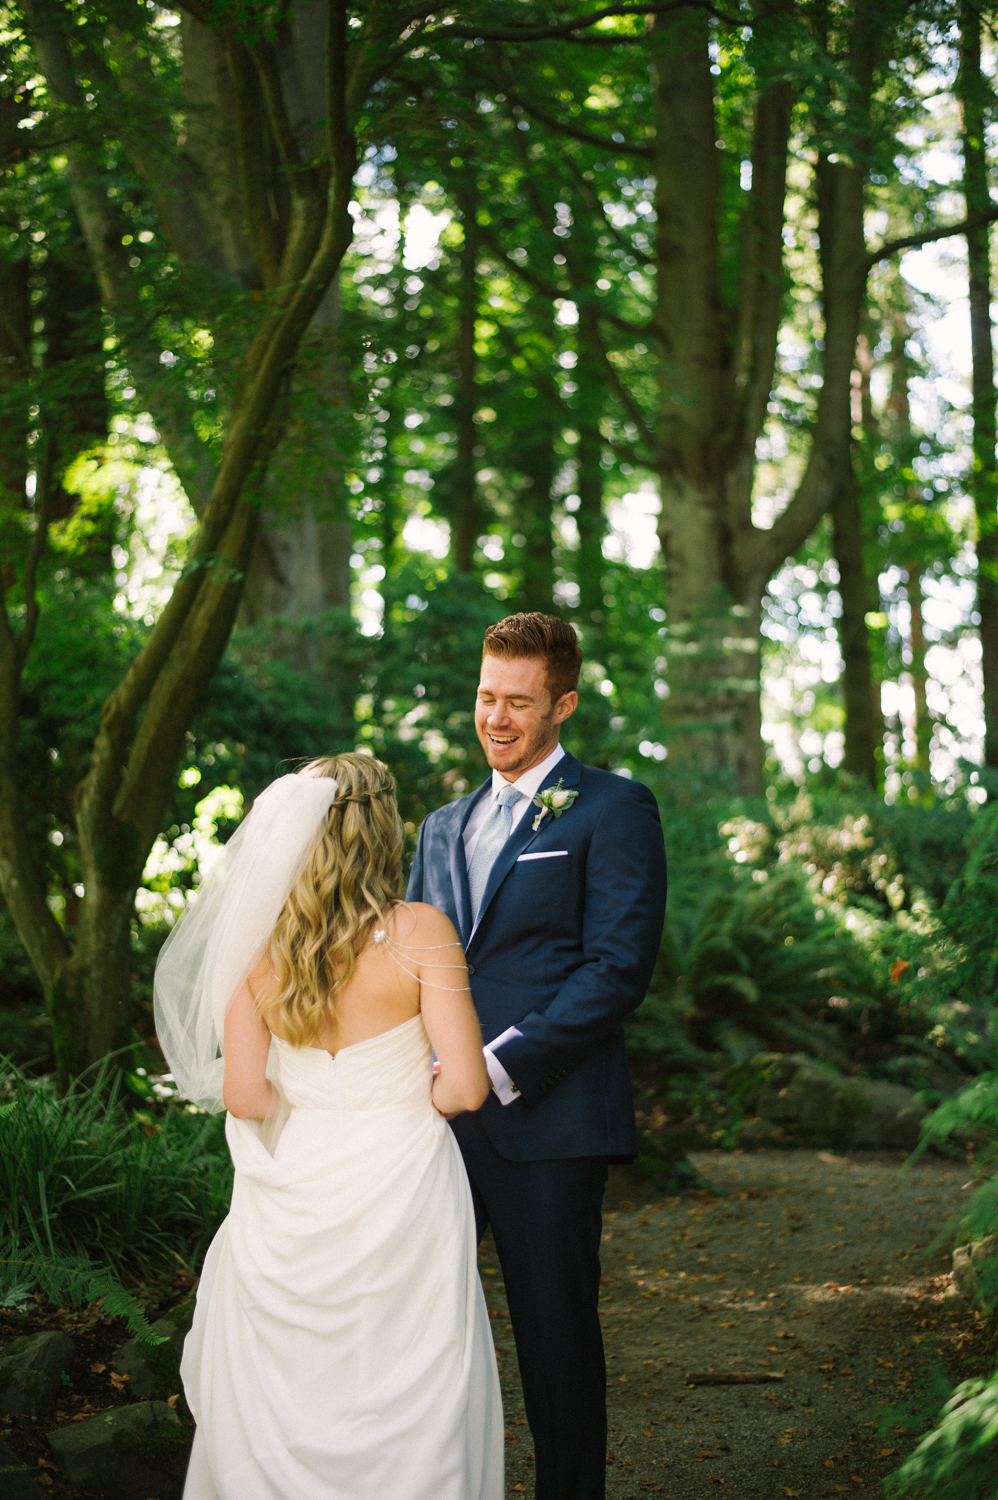 Stanely Park Wedding, Vancouver BC-Jessika Hunter-1.JPG